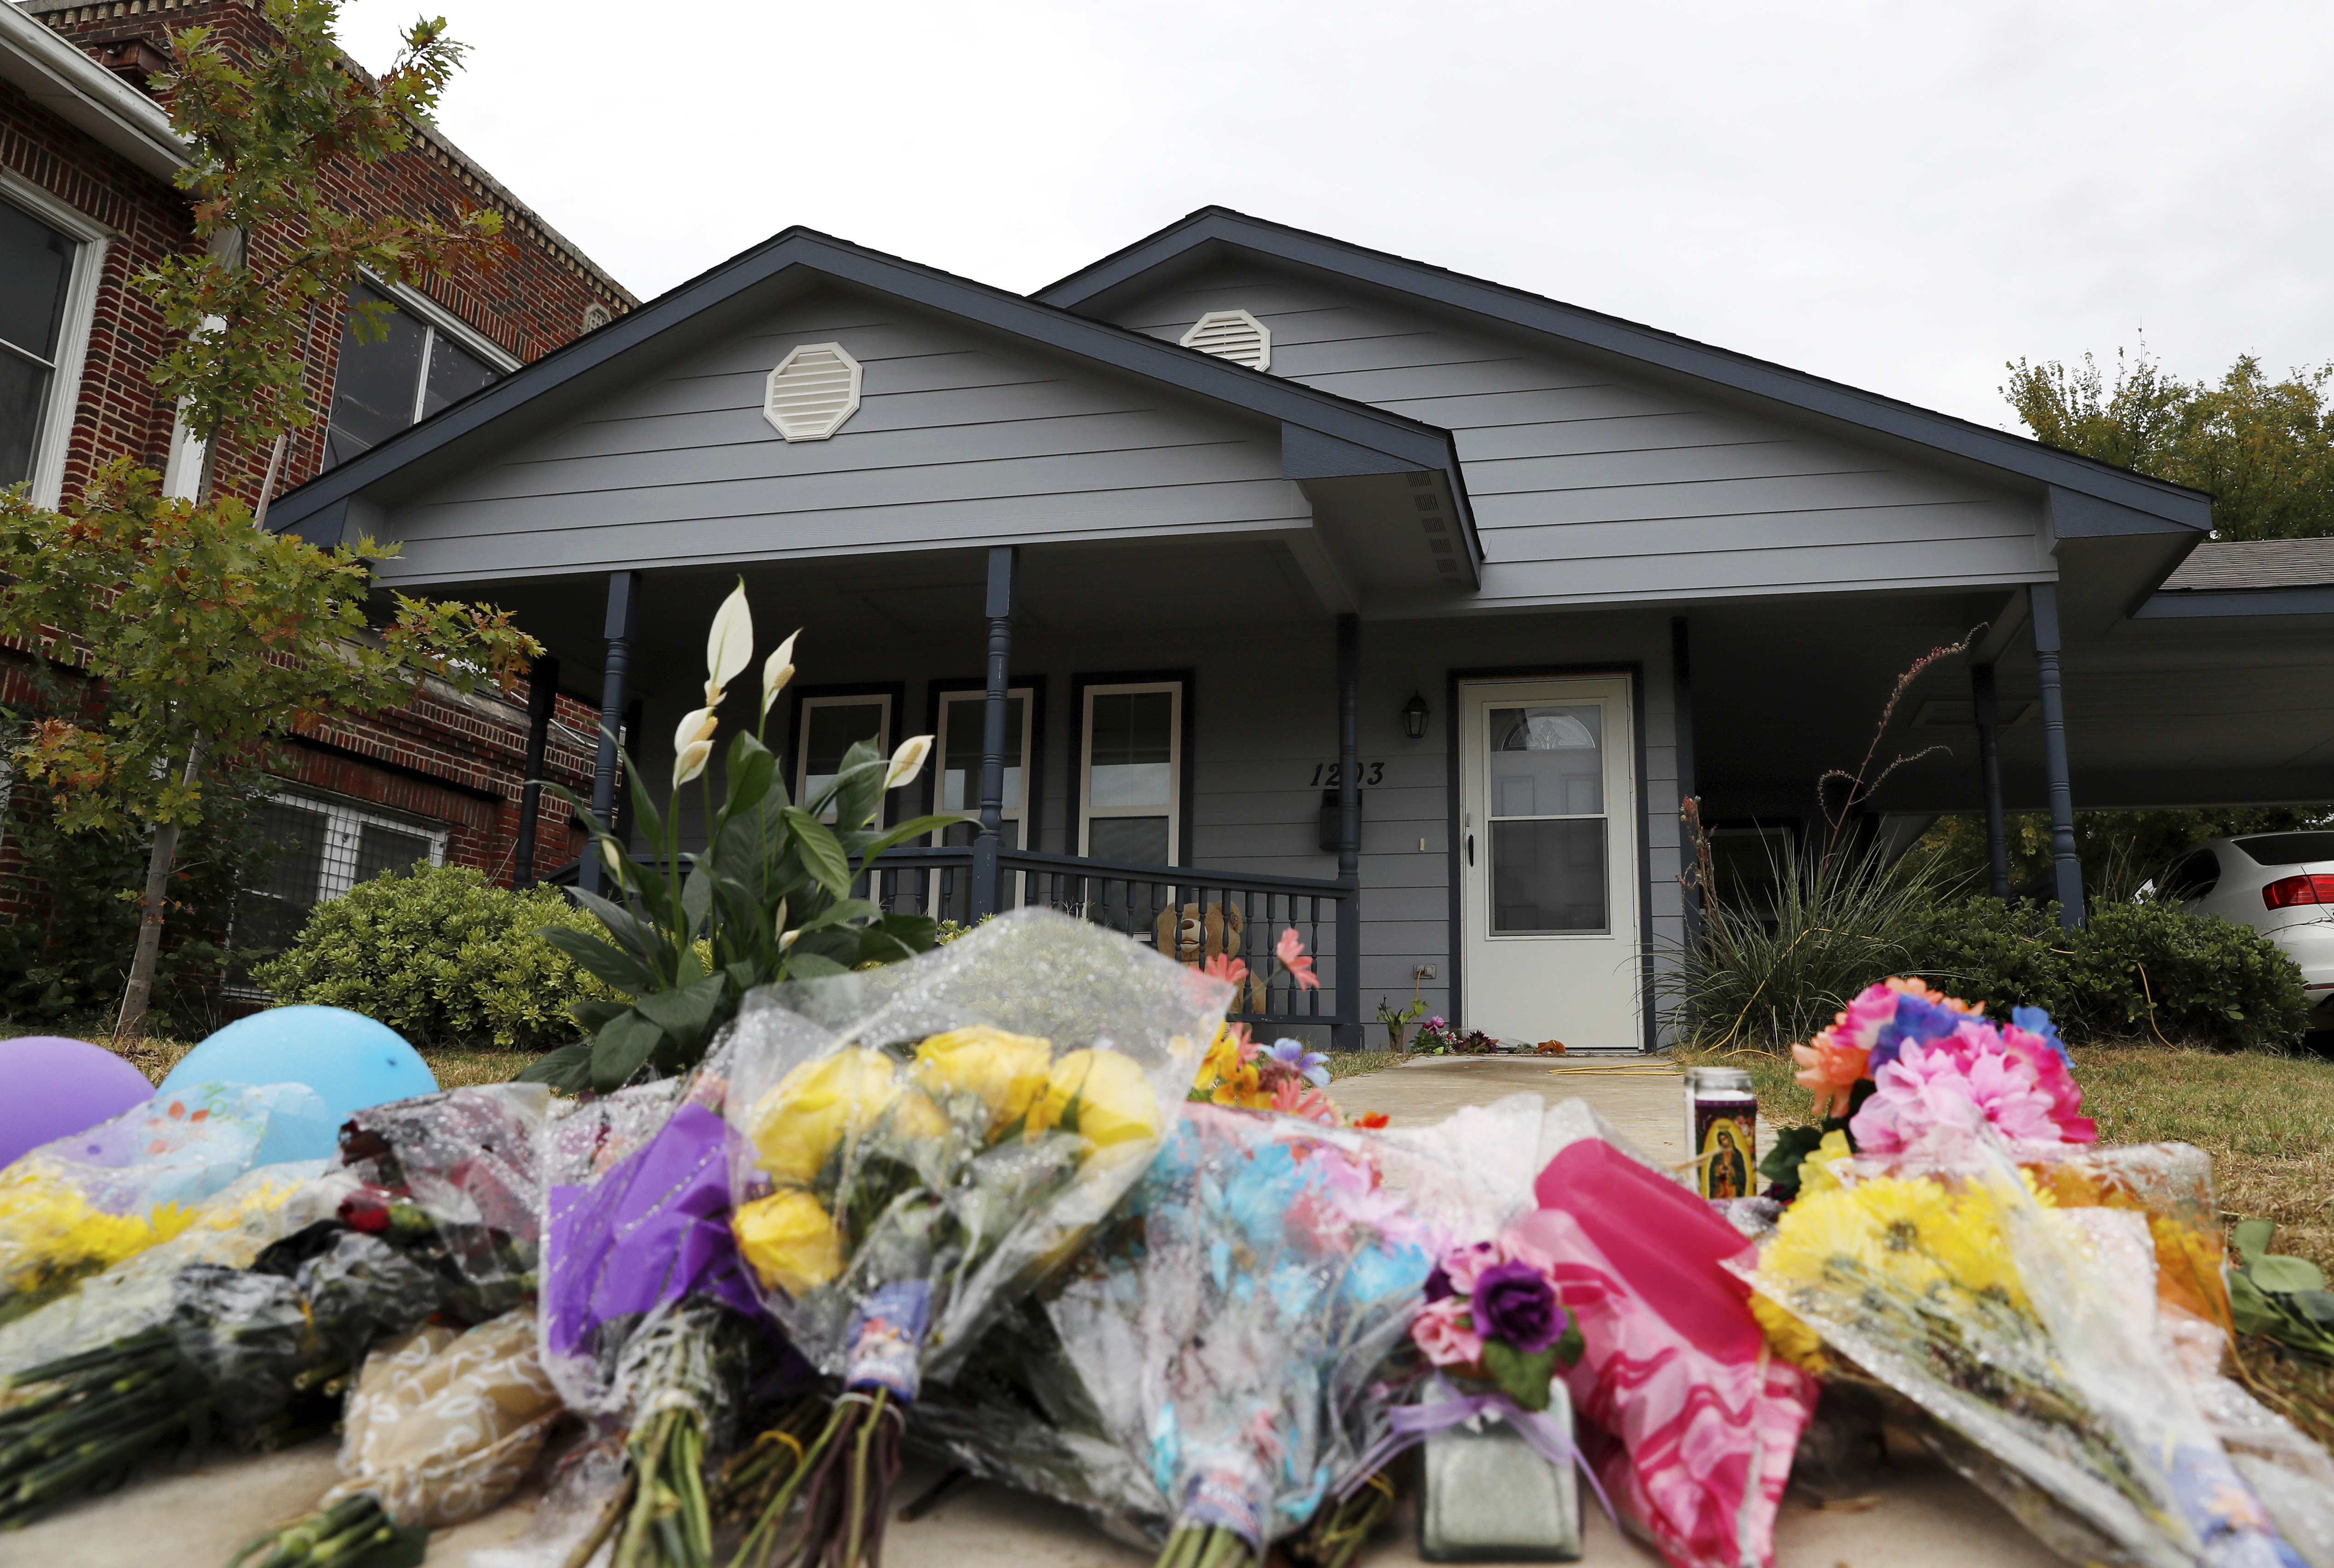 Mother of Atatiana Jefferson, Woman Killed by Texas Police in Her Home, Dies in Same Residence